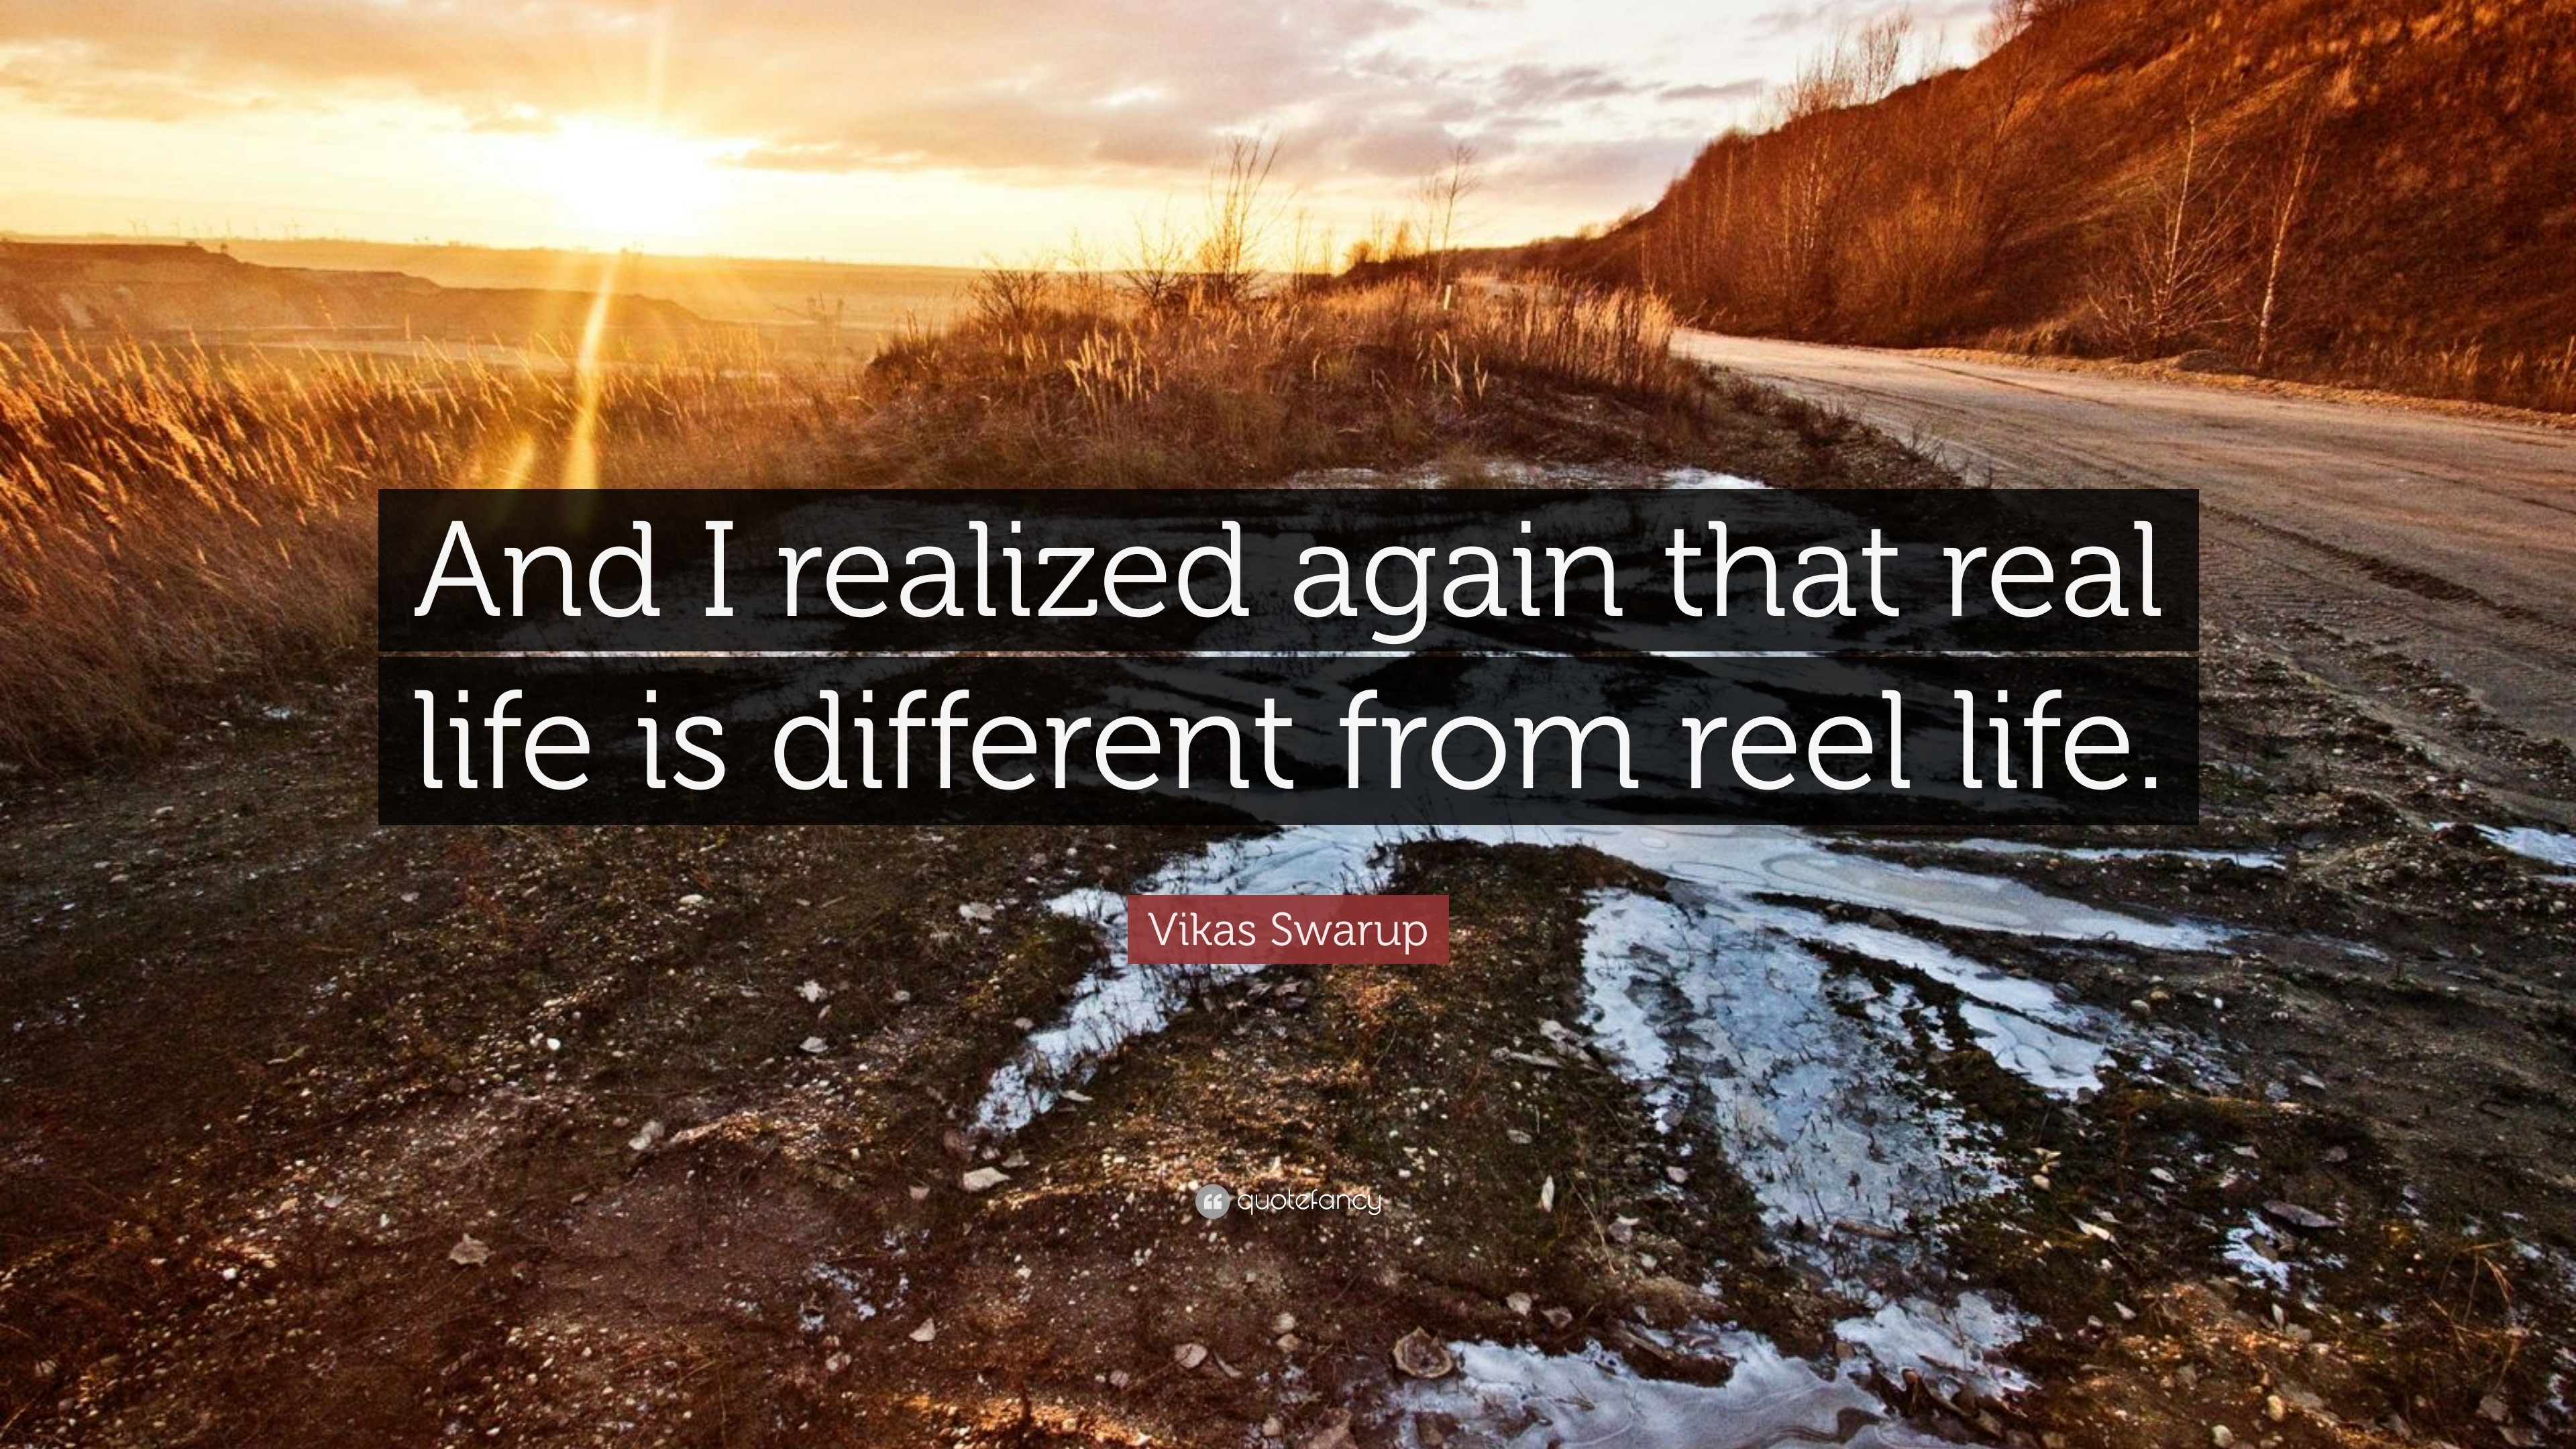 Image of: Twitter Vikas Swarup Quote and Realized Again That Real Life Is Different From Reel Quotefancy Vikas Swarup Quote and Realized Again That Real Life Is